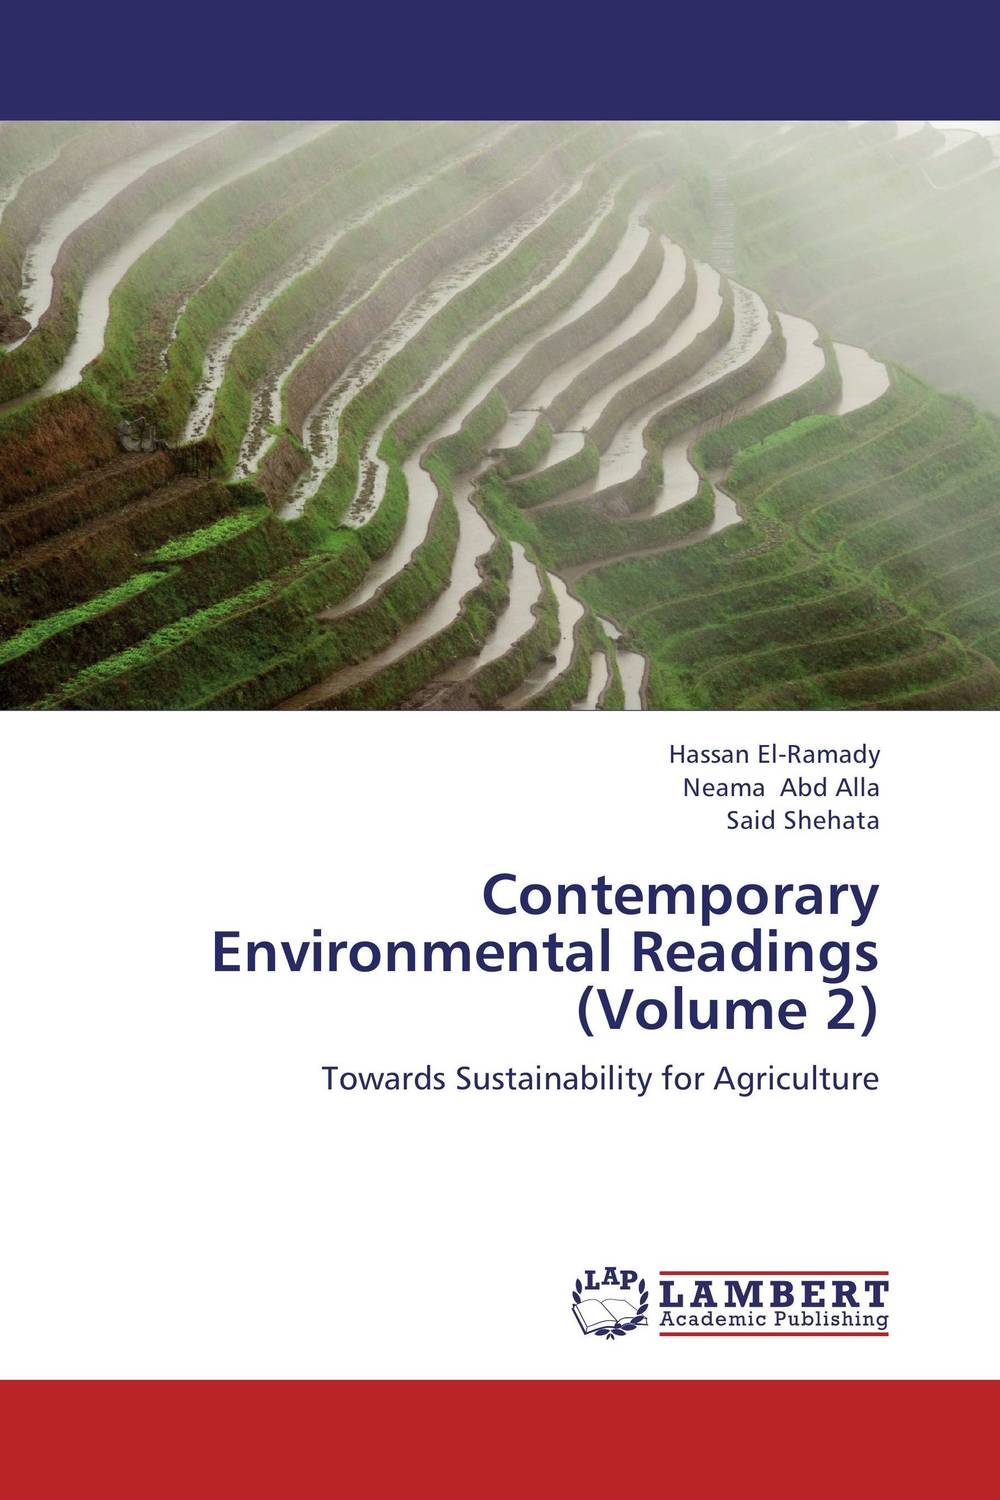 Contemporary Environmental Readings (Volume 2) bride of the water god volume 12